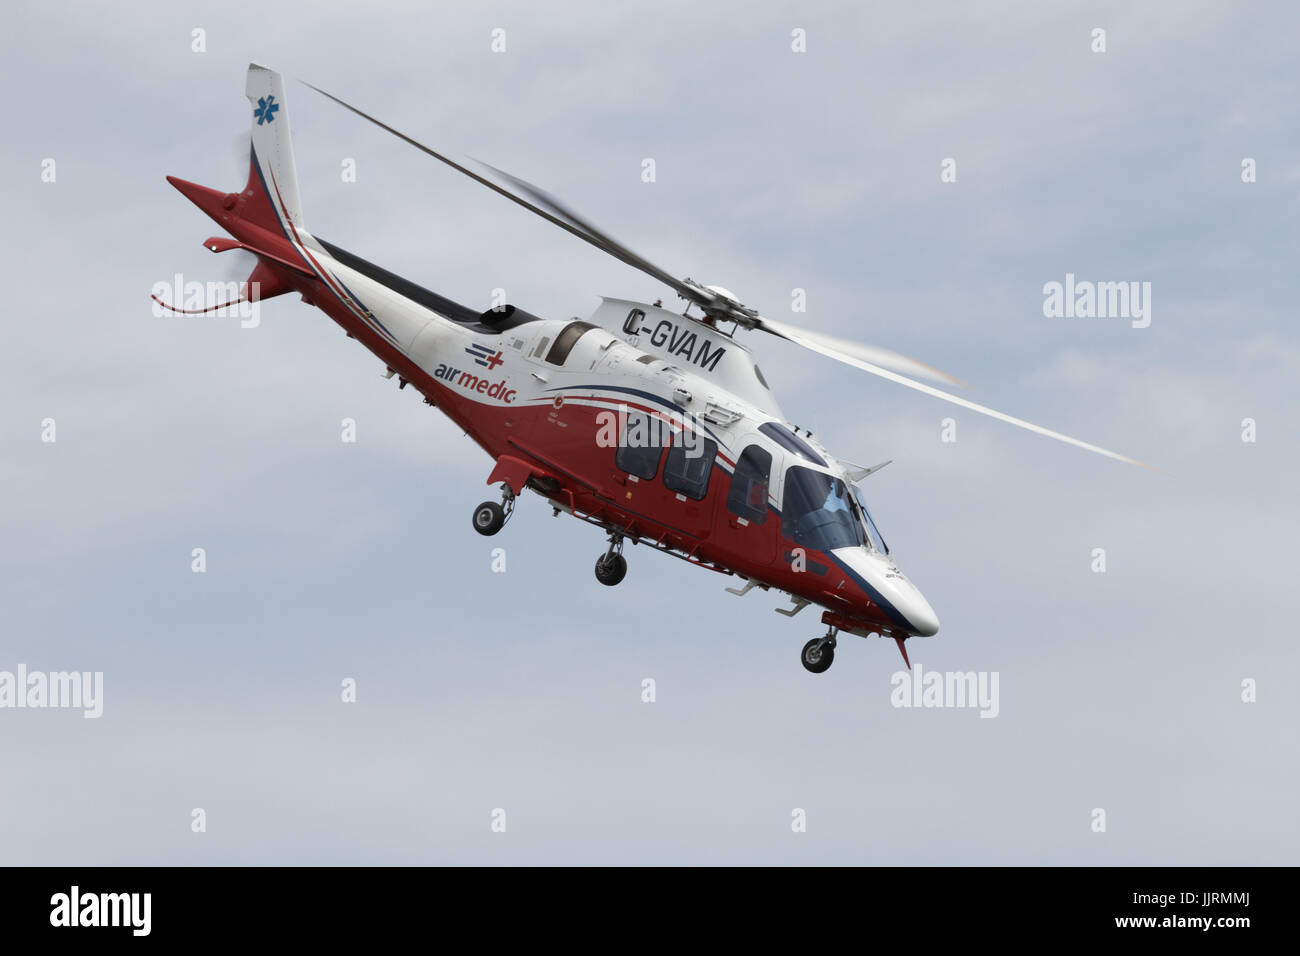 Air Medic helicopter taking off - Stock Image